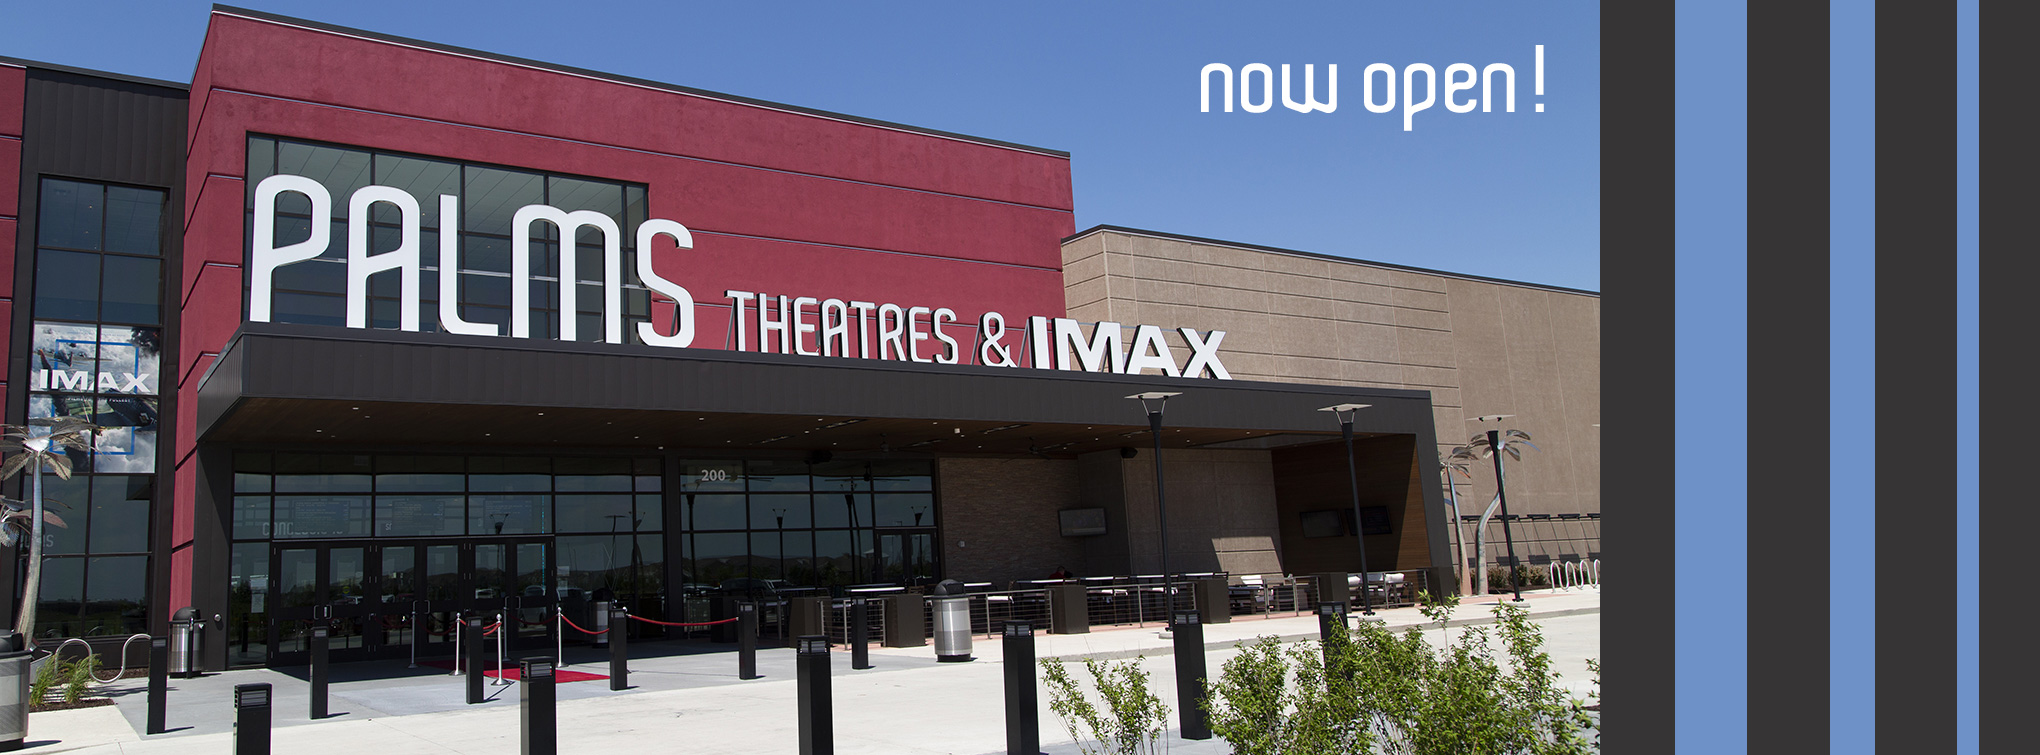 Slider image for the Palms Theatres & IMAX